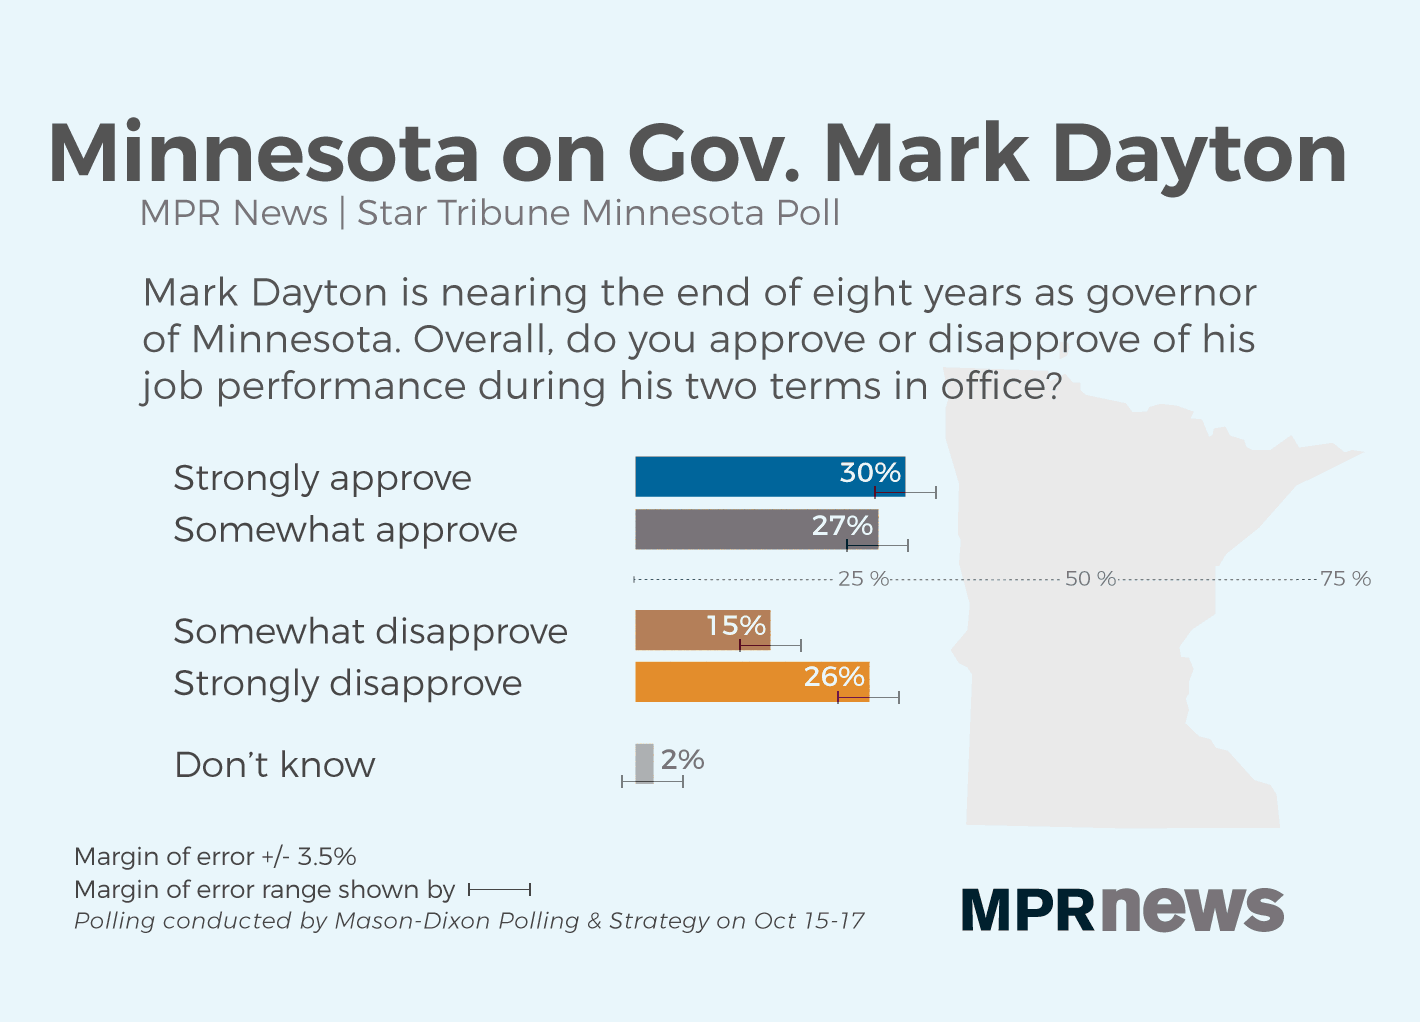 Most Minnesotans approve of Dayton's job